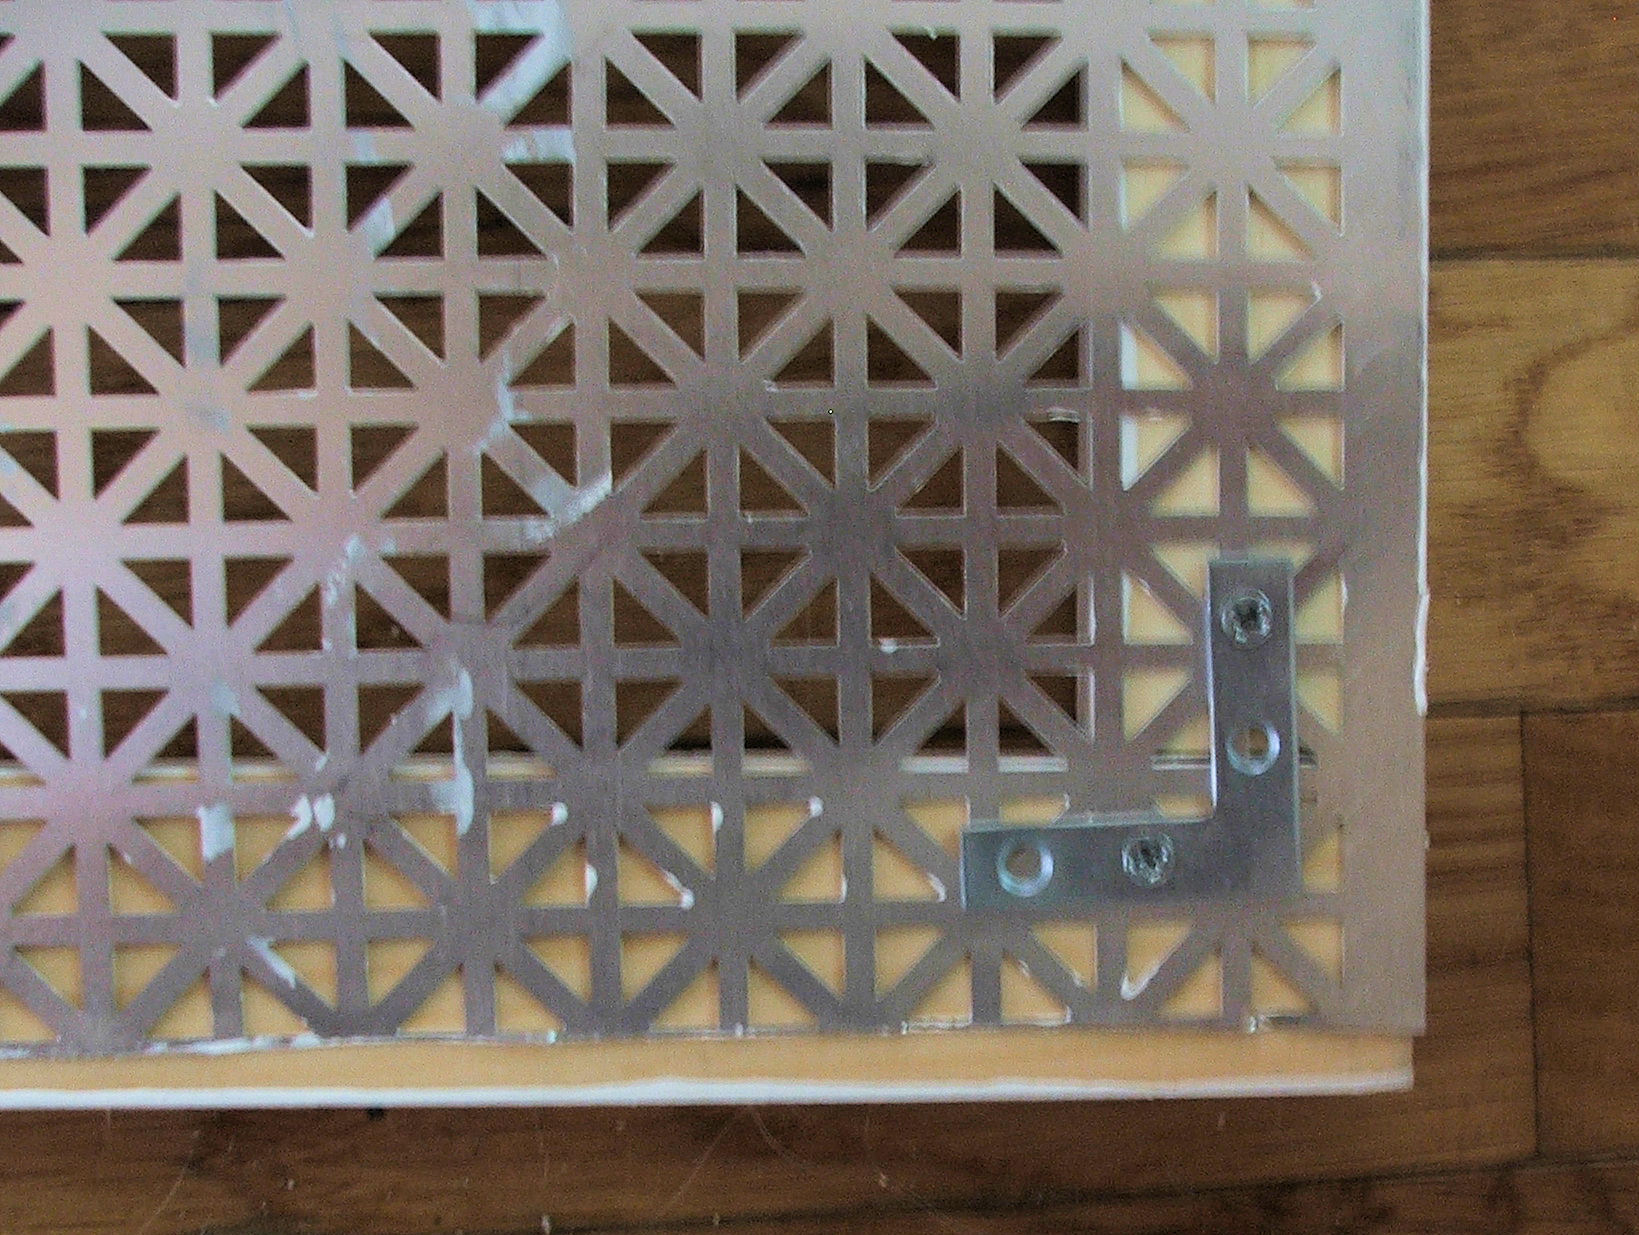 Diy Air Return Vent Dio Home Improvements